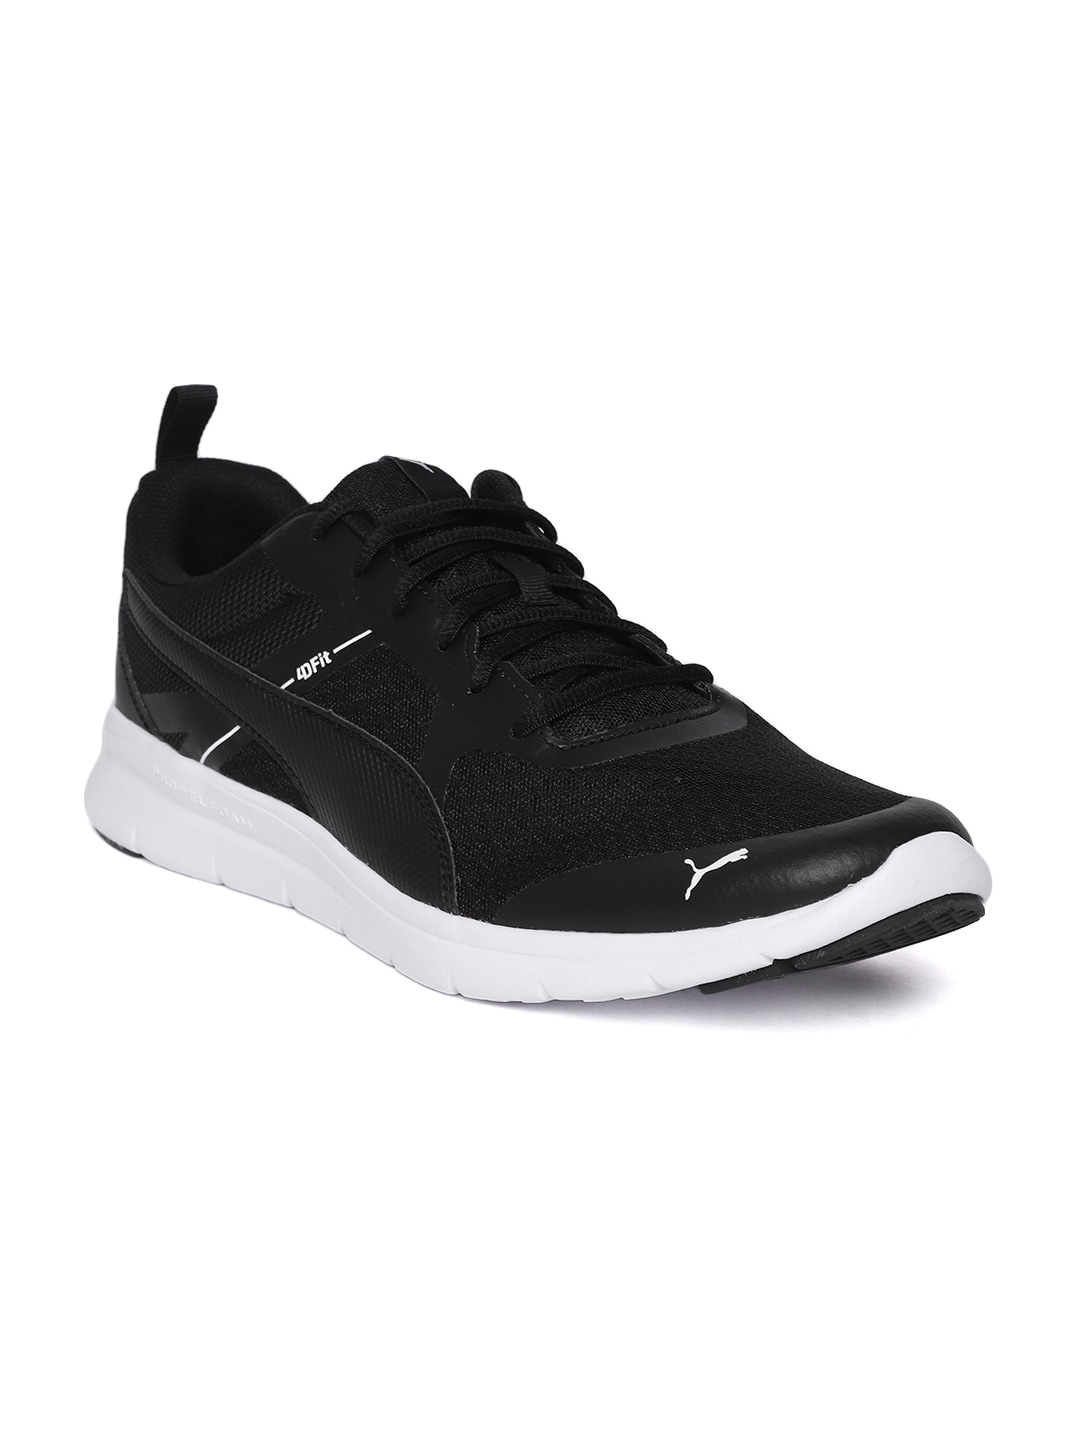 2aafd368fd03 Puma Shoes - Buy Puma Shoes for Men   Women Online in India